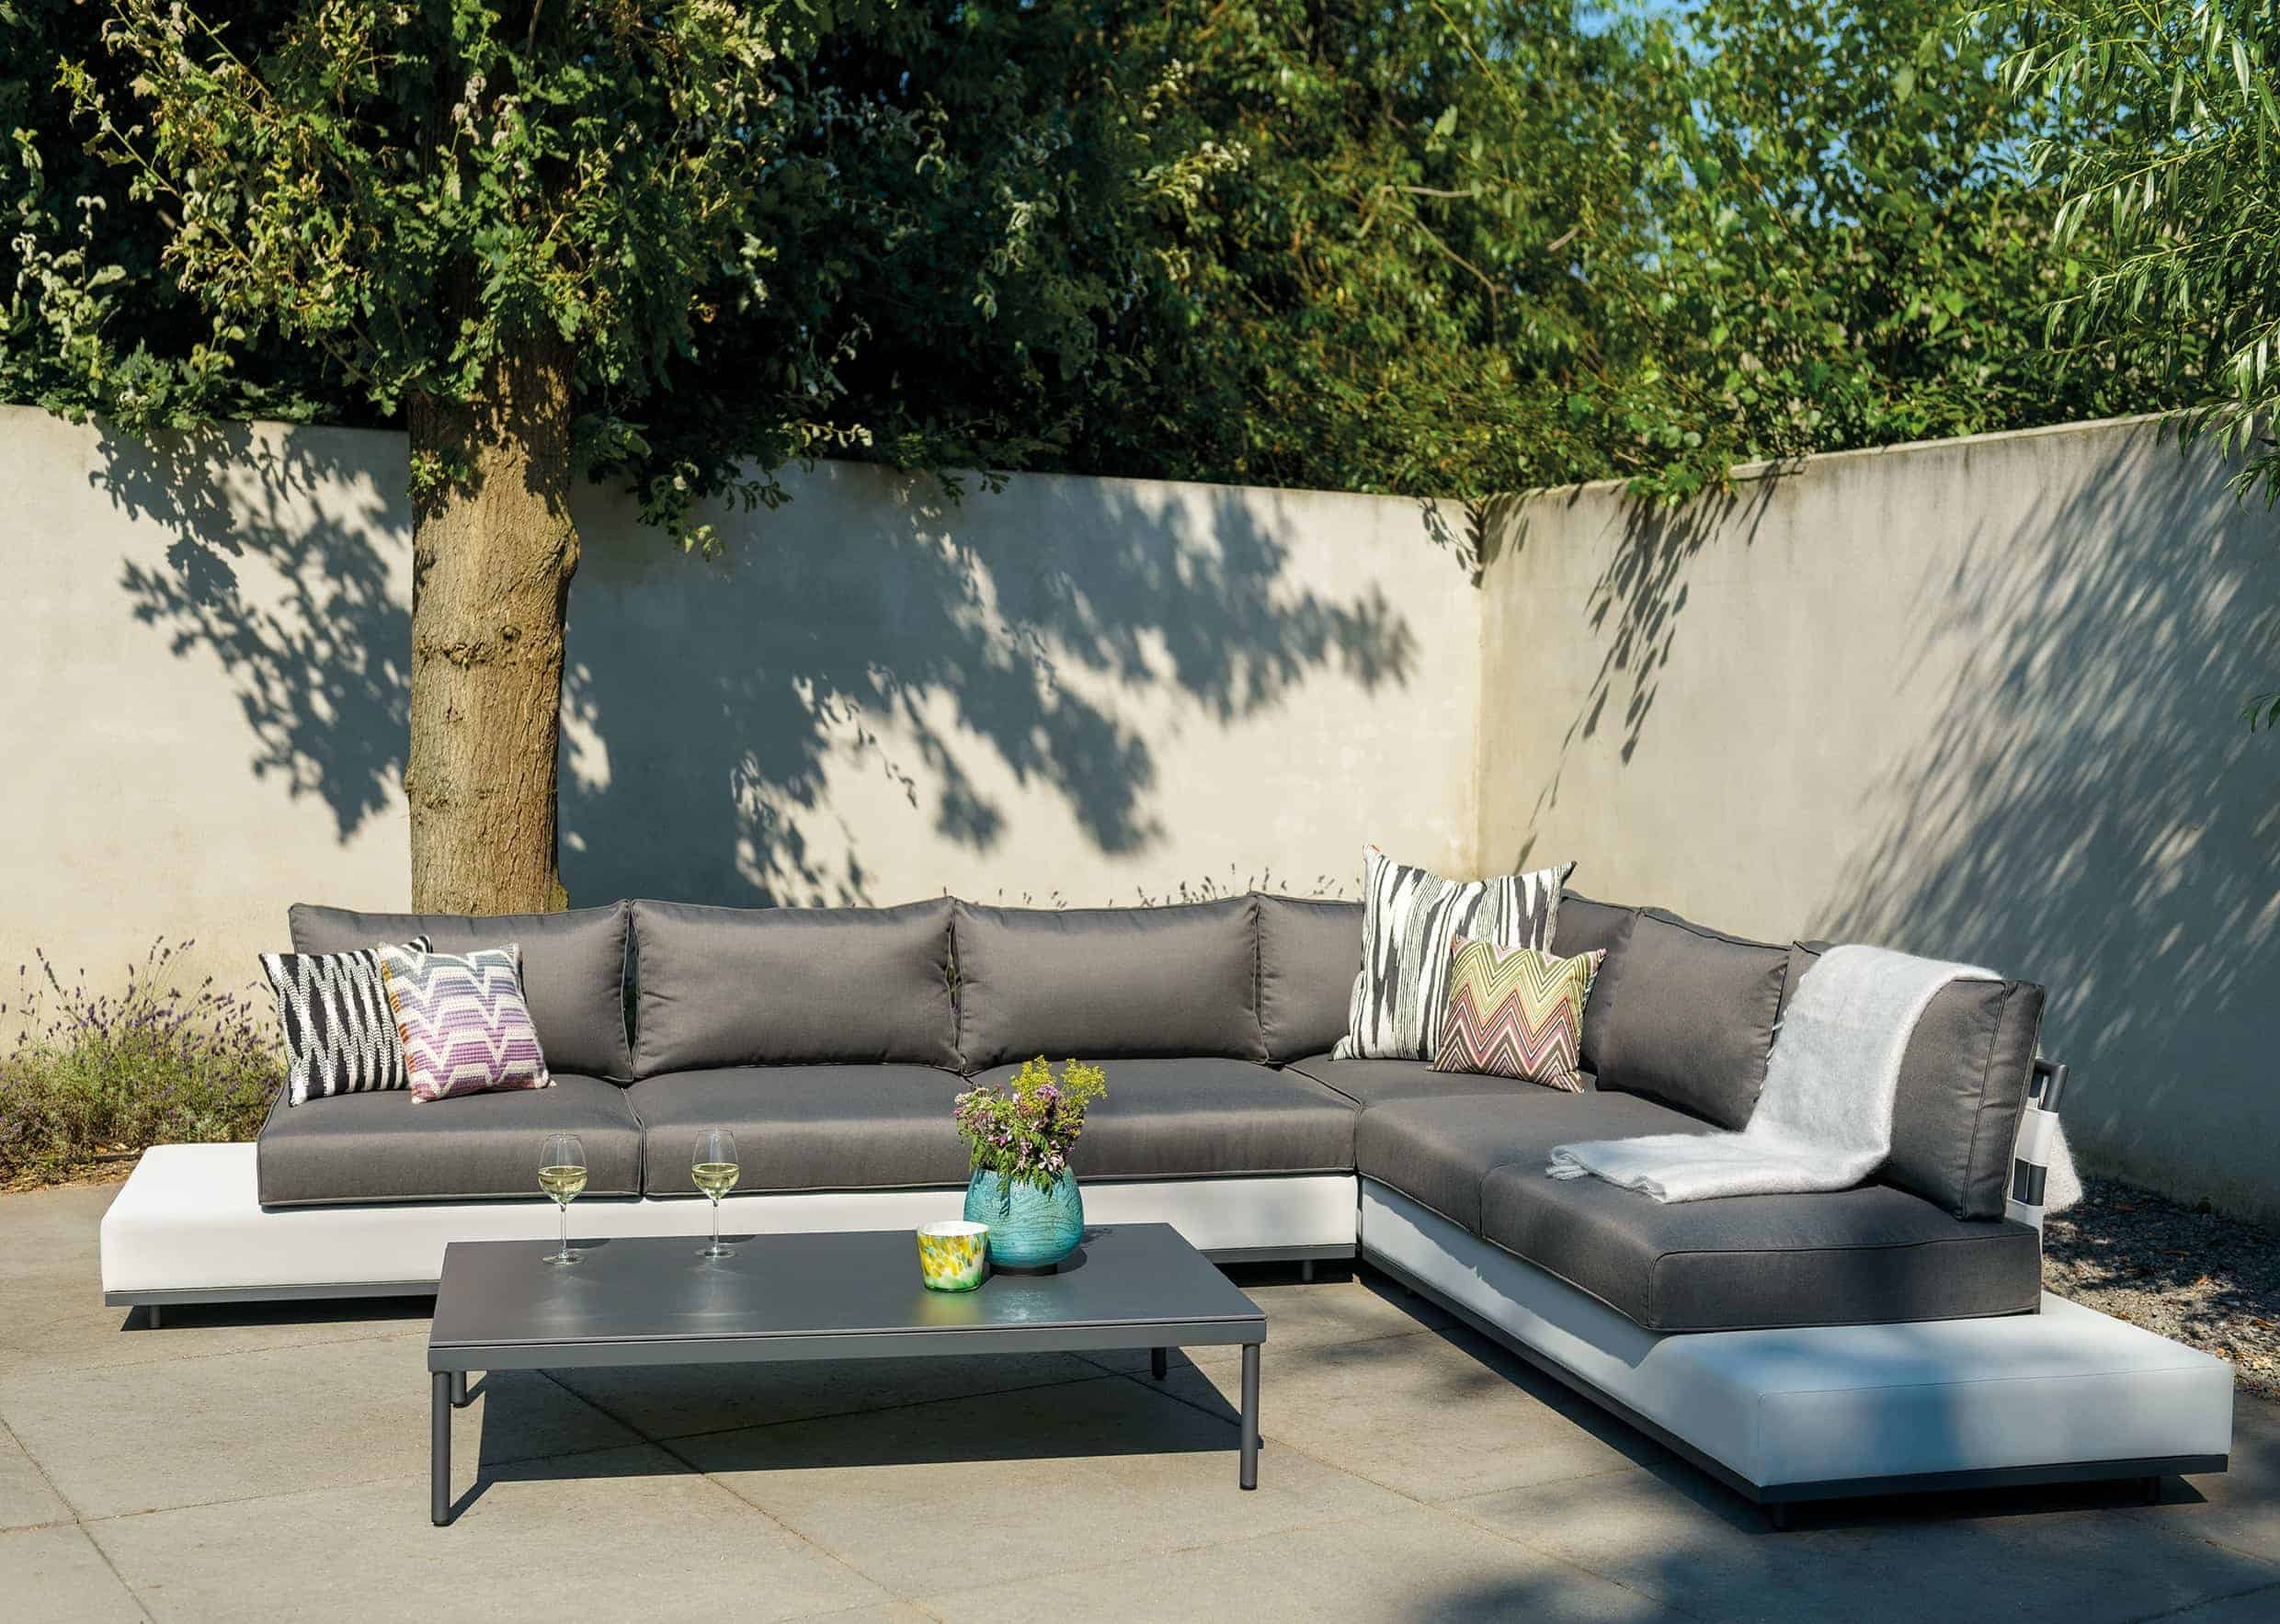 Garden Furniture Dublin outdoor garden furniture dublin ireland | serpa outdoor sofa set